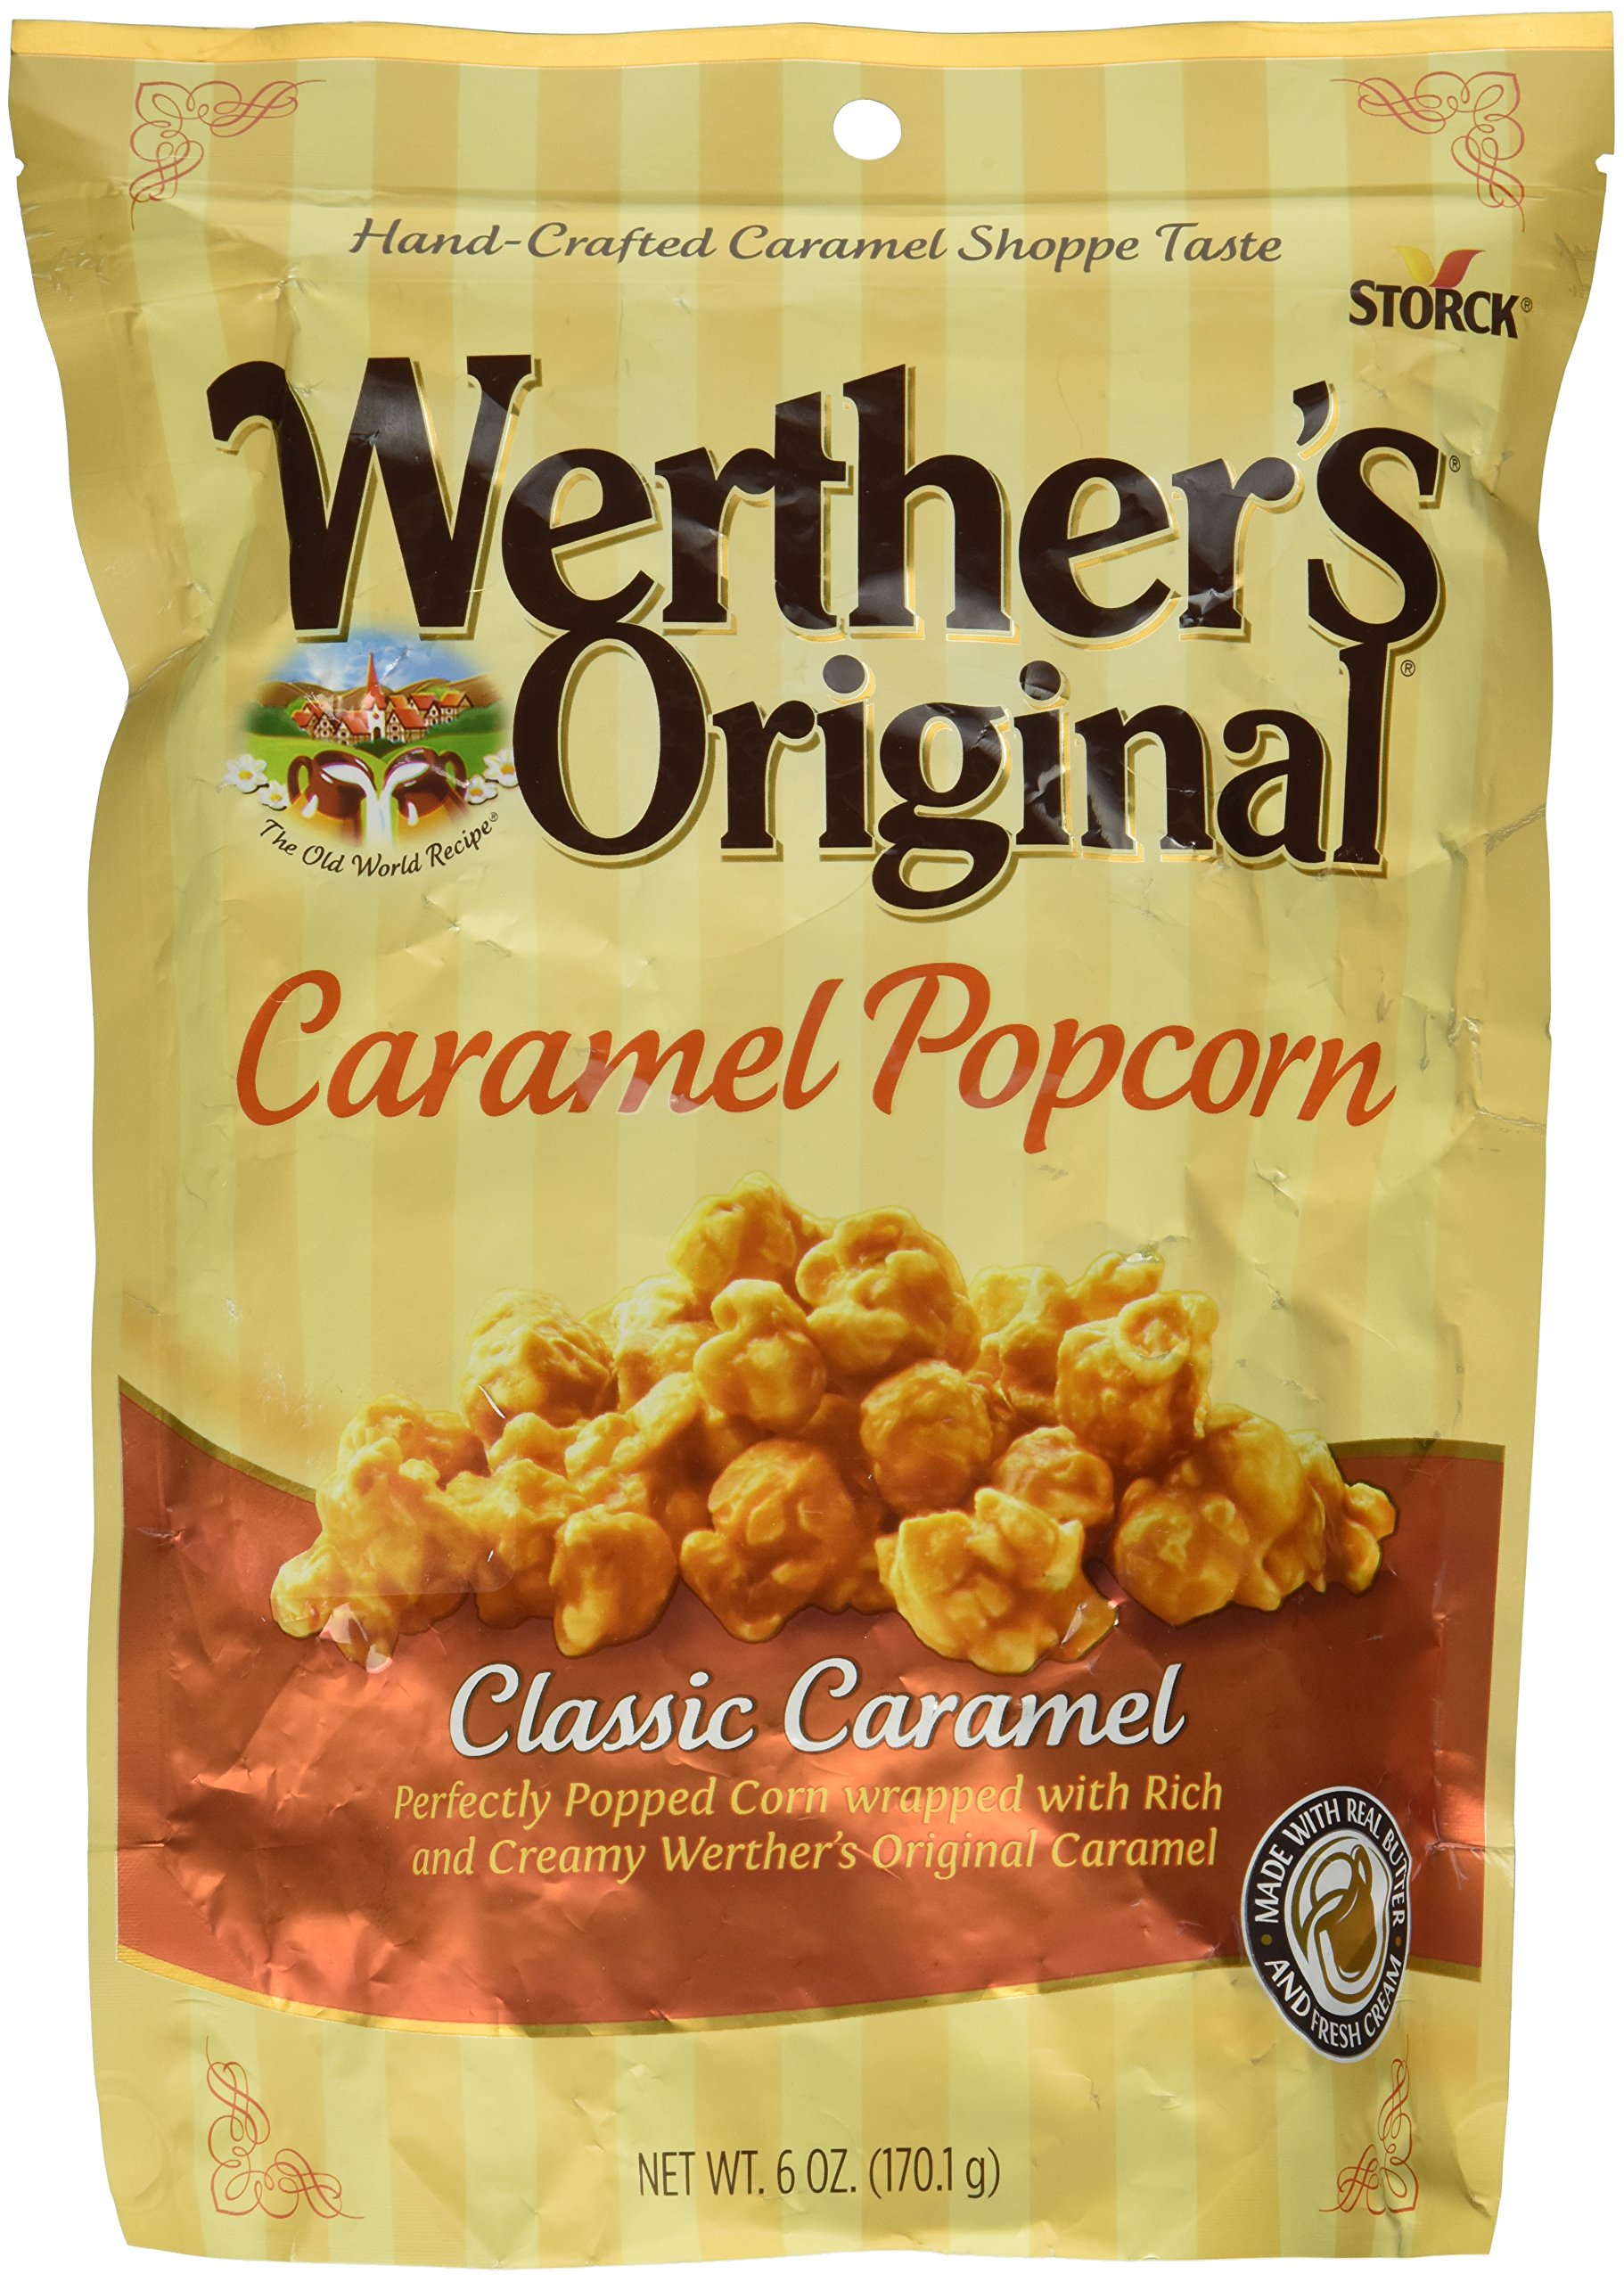 Werther's, Original, Caramel Popcorn, Classic Caramel, 6 Ounce Bag (Pack of 3) by Werther's